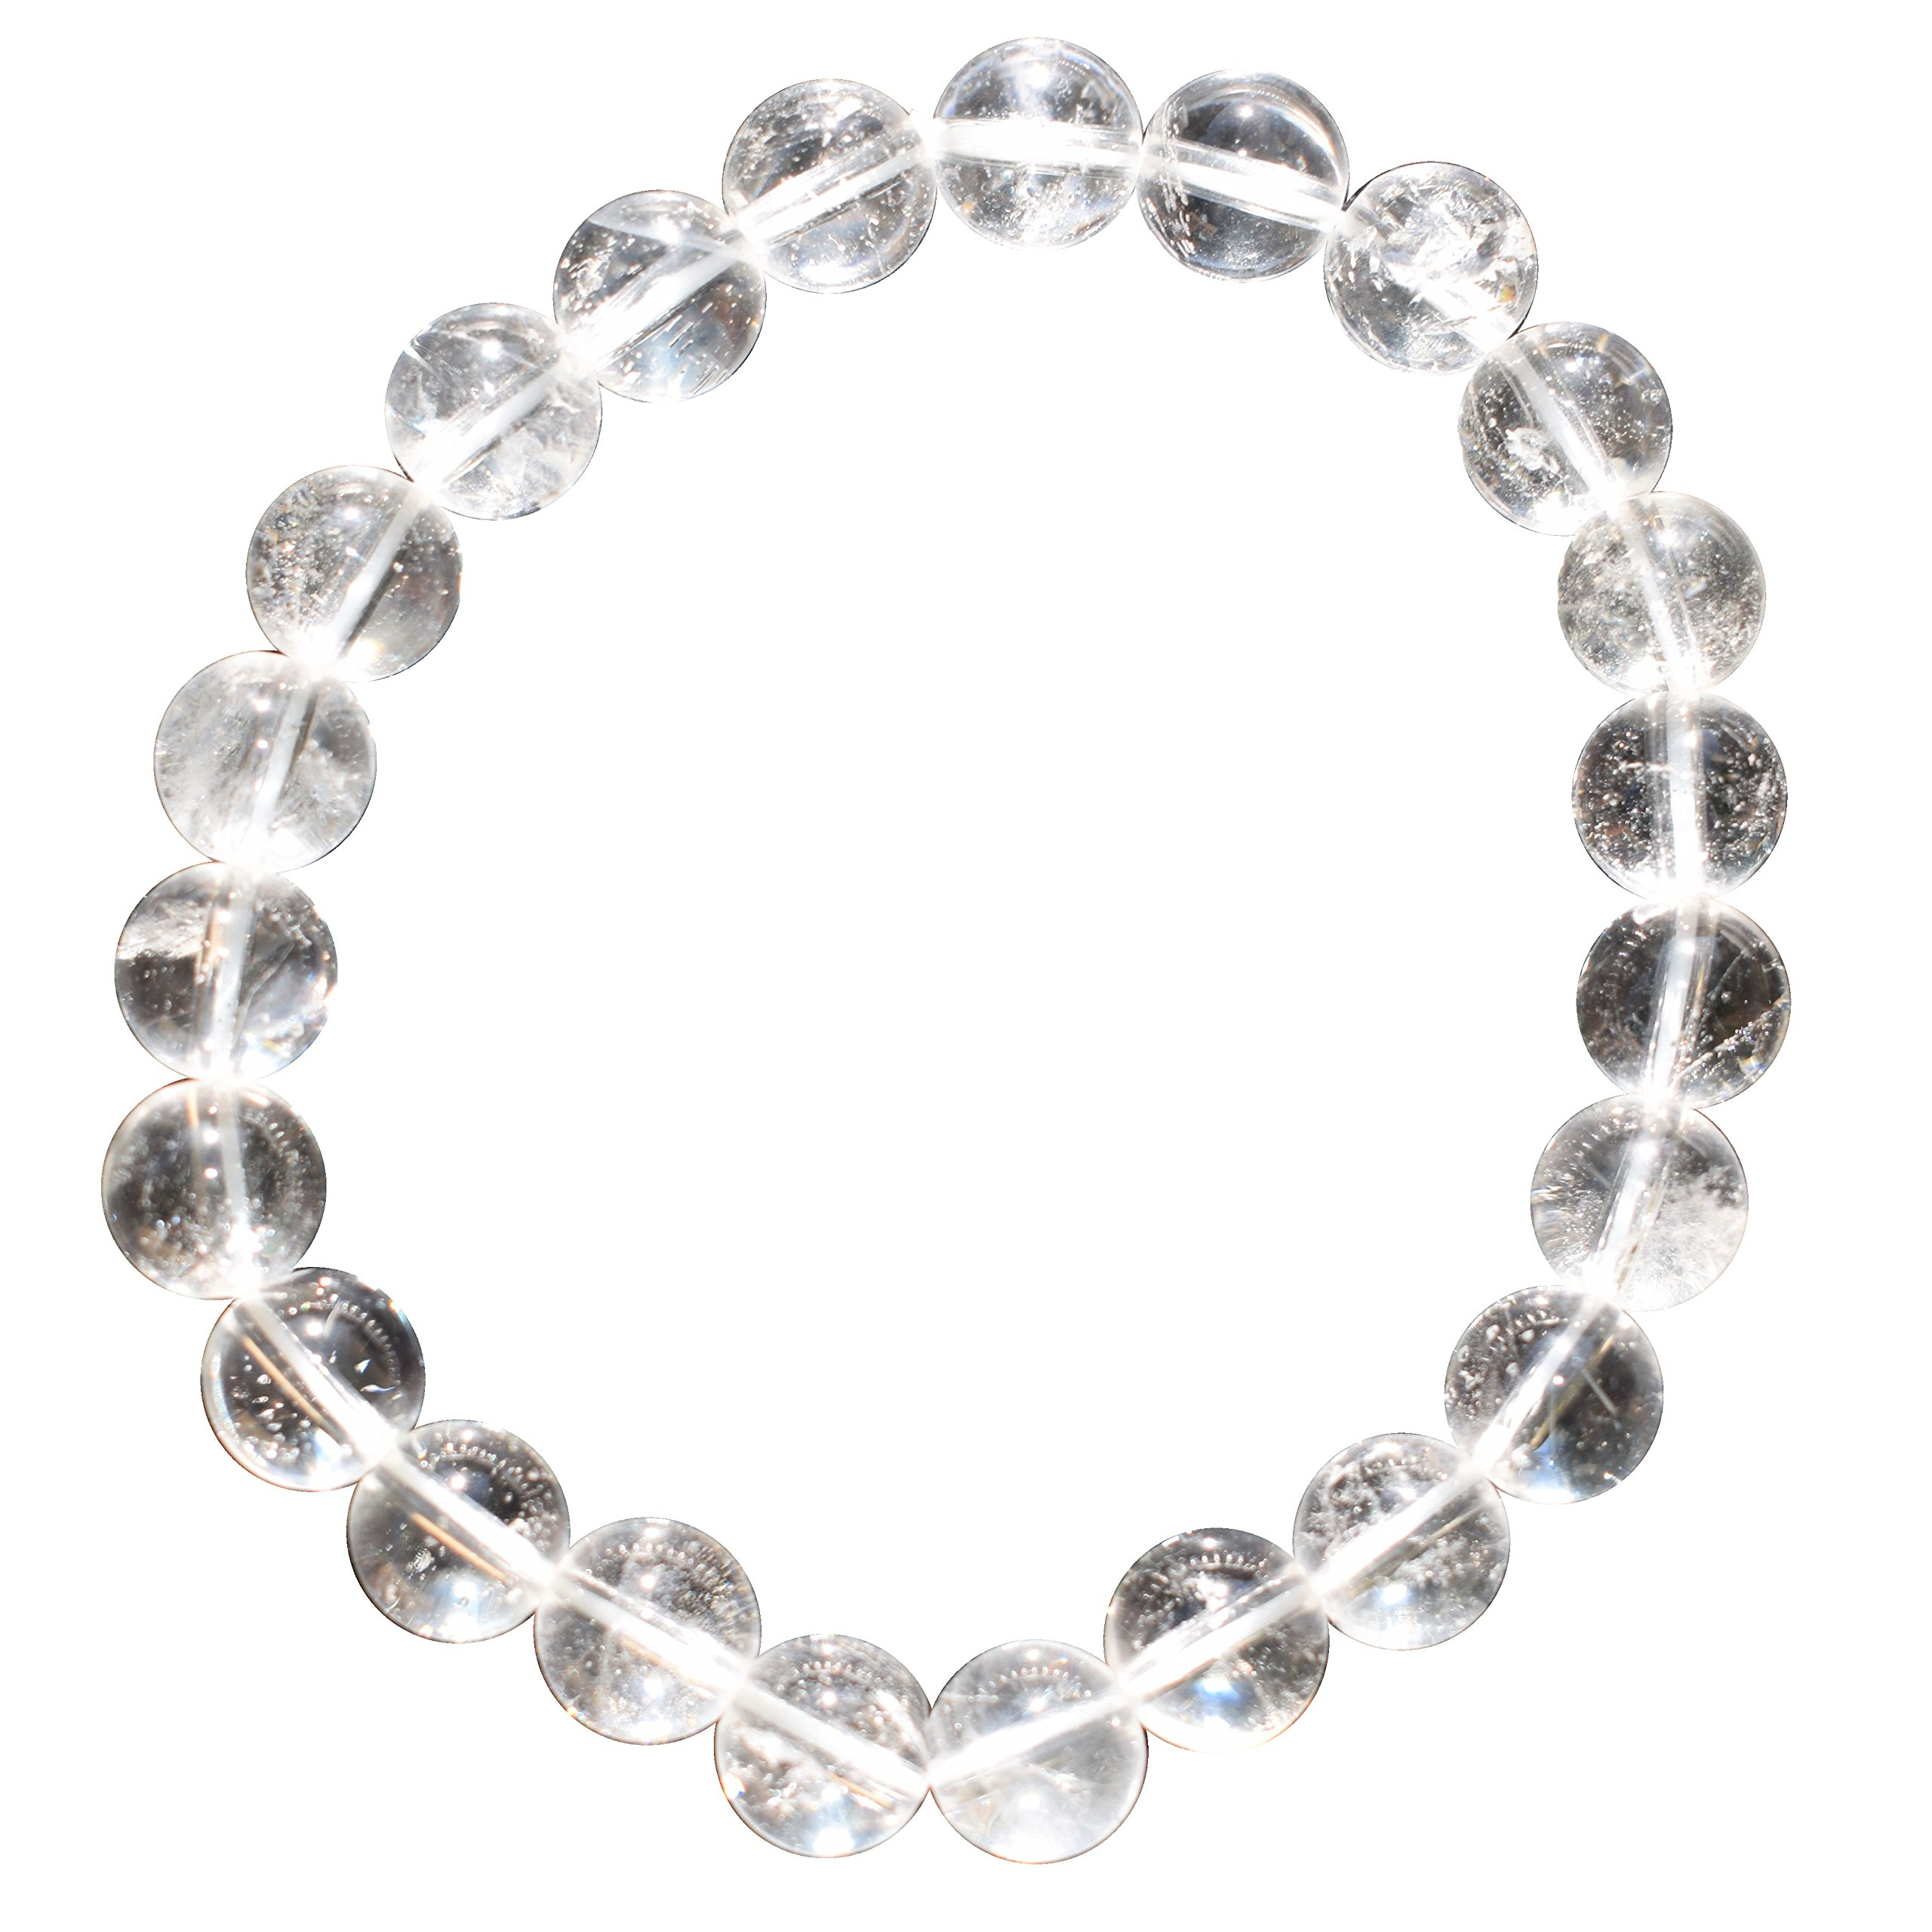 ZENERGY GEMS CHARGED Premium 7'' Amplifier Clear Quartz Crystal 8mm Bead Bracelet [REIKI] by